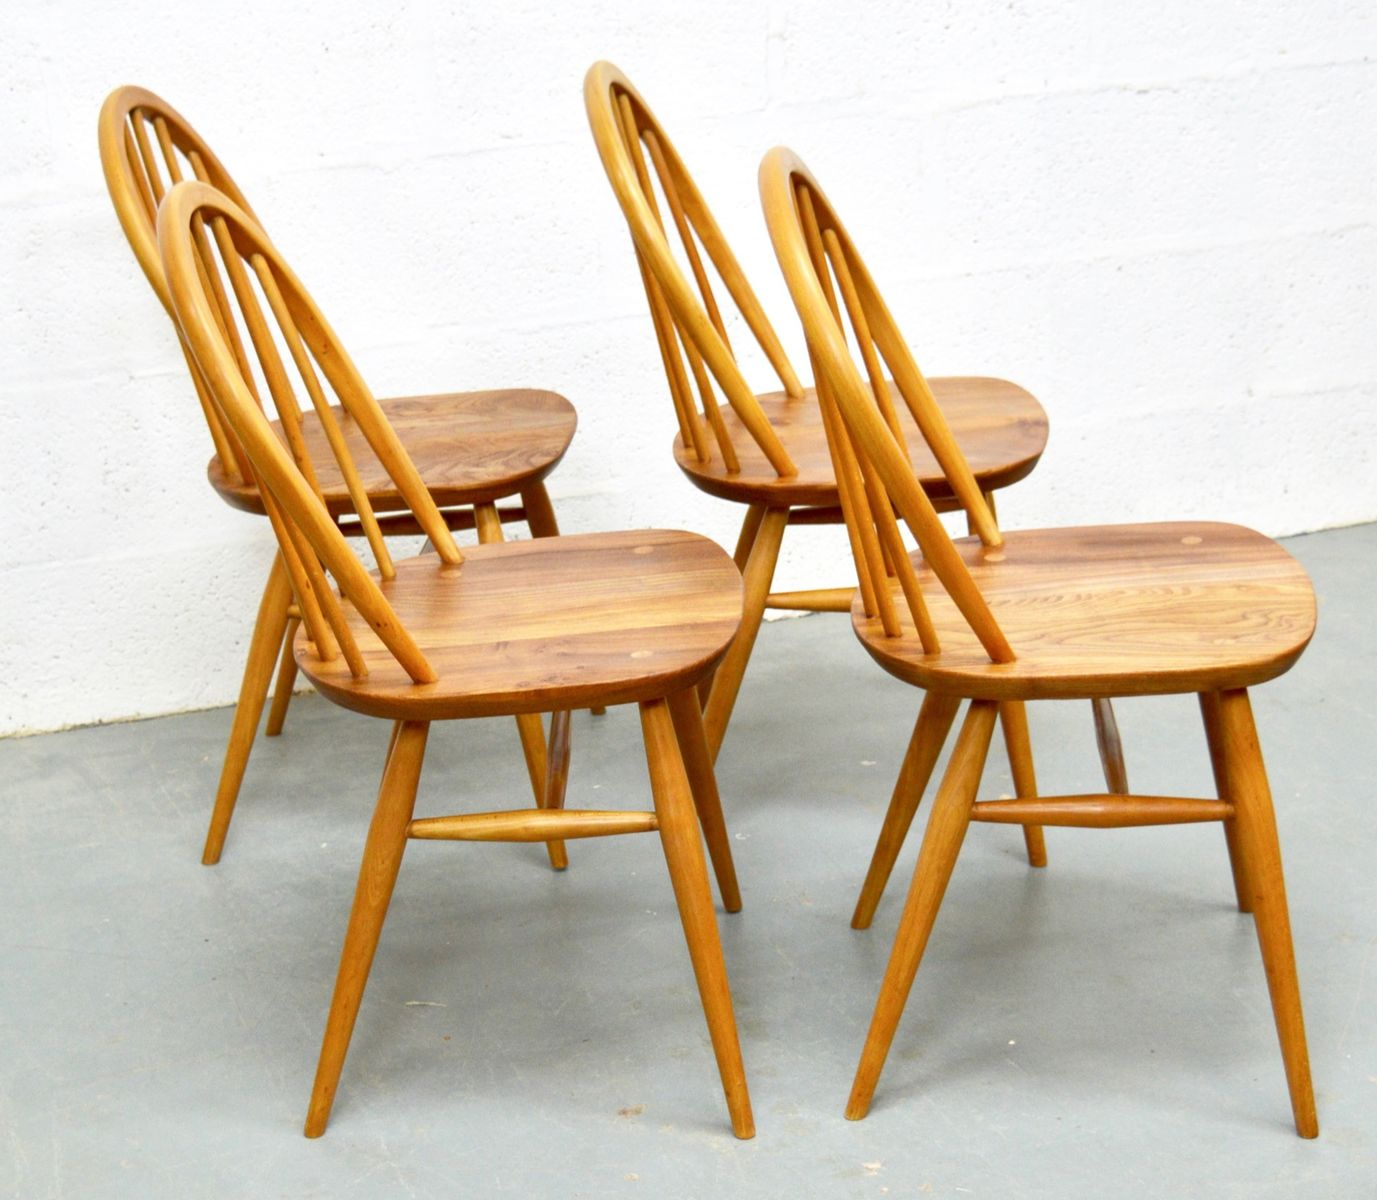 Mid Century Elm Dining Table and Chairs from Ercol for  : mid century elm dining table and chairs from ercol 10 from www.pamono.co.uk size 1377 x 1200 jpeg 135kB